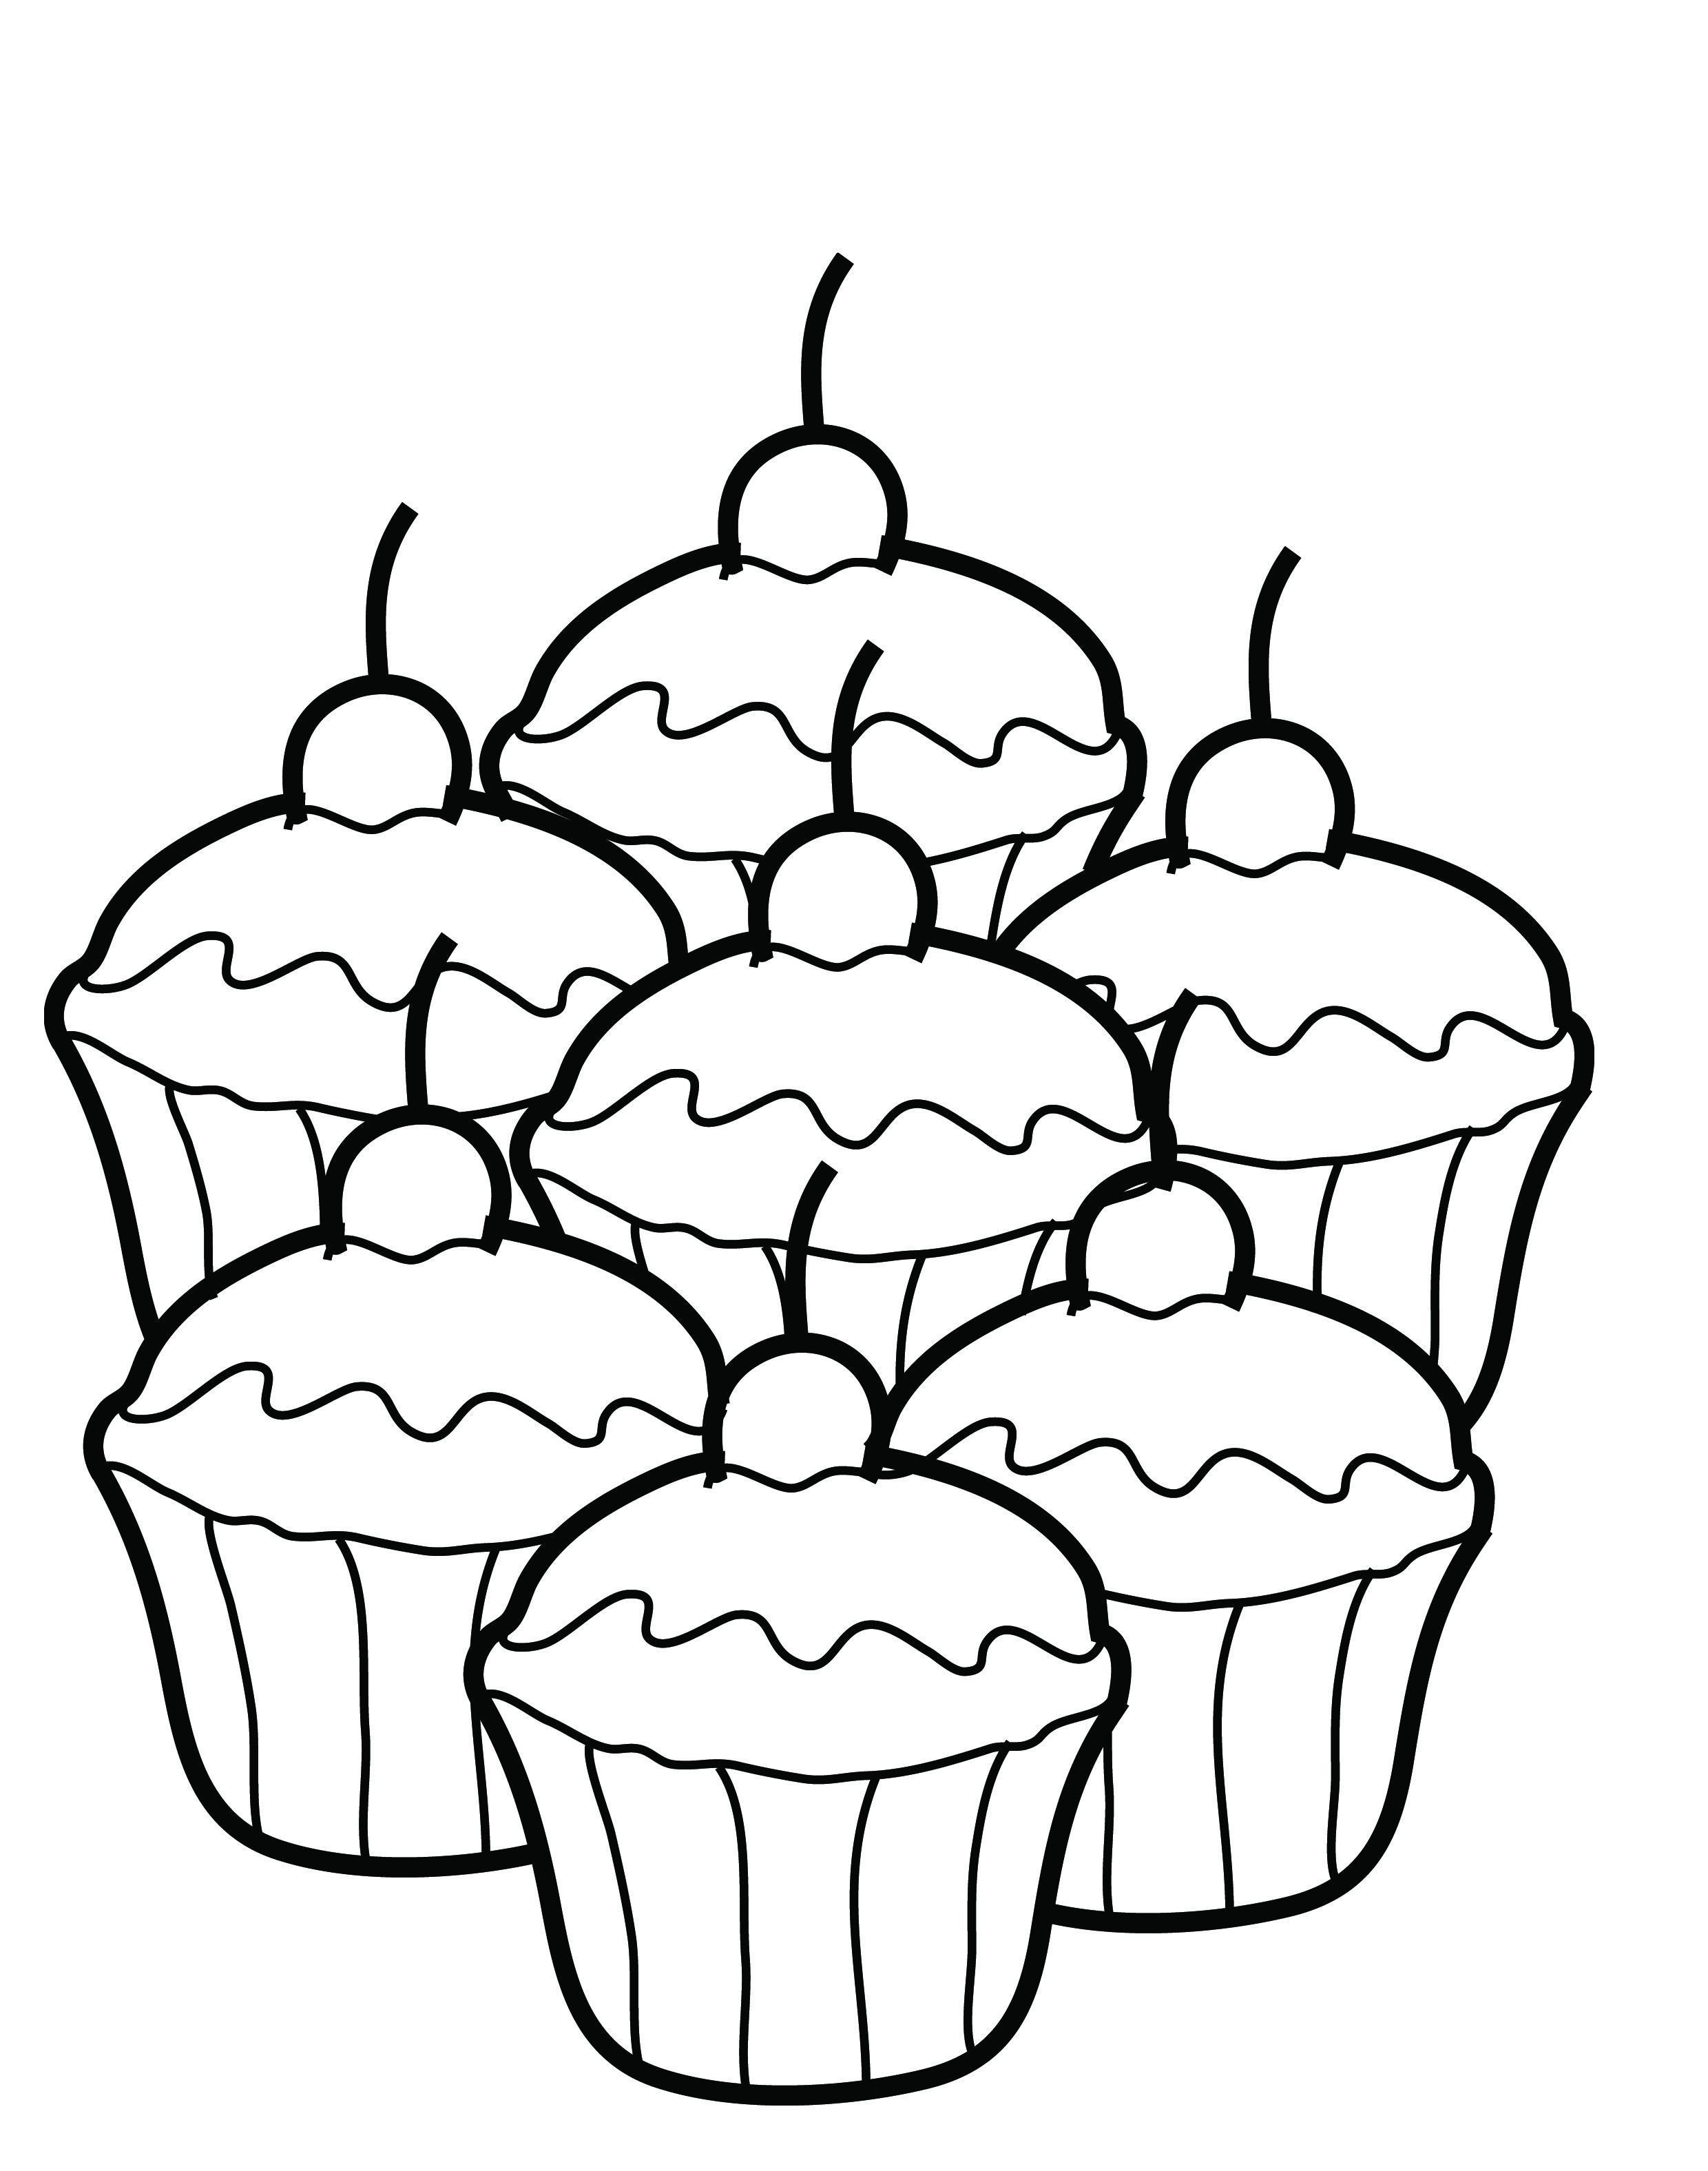 cupcake coloring pages for kids - Children Coloring Pages